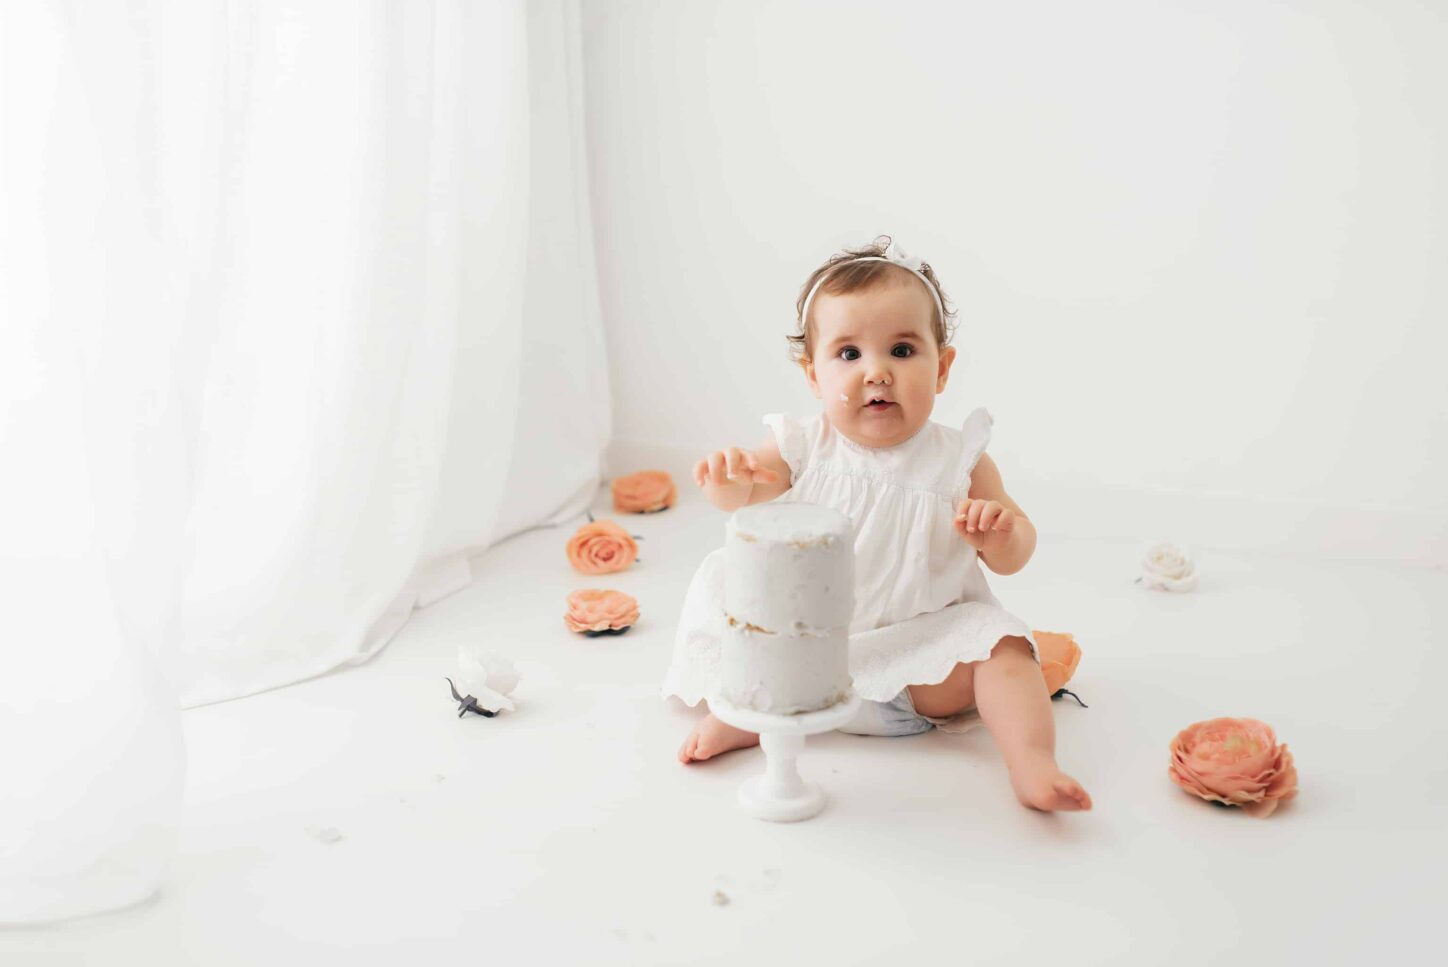 newborn-cake-smash-birthday-photoshoot-photography-photographer-poole-dorset-bournemouth